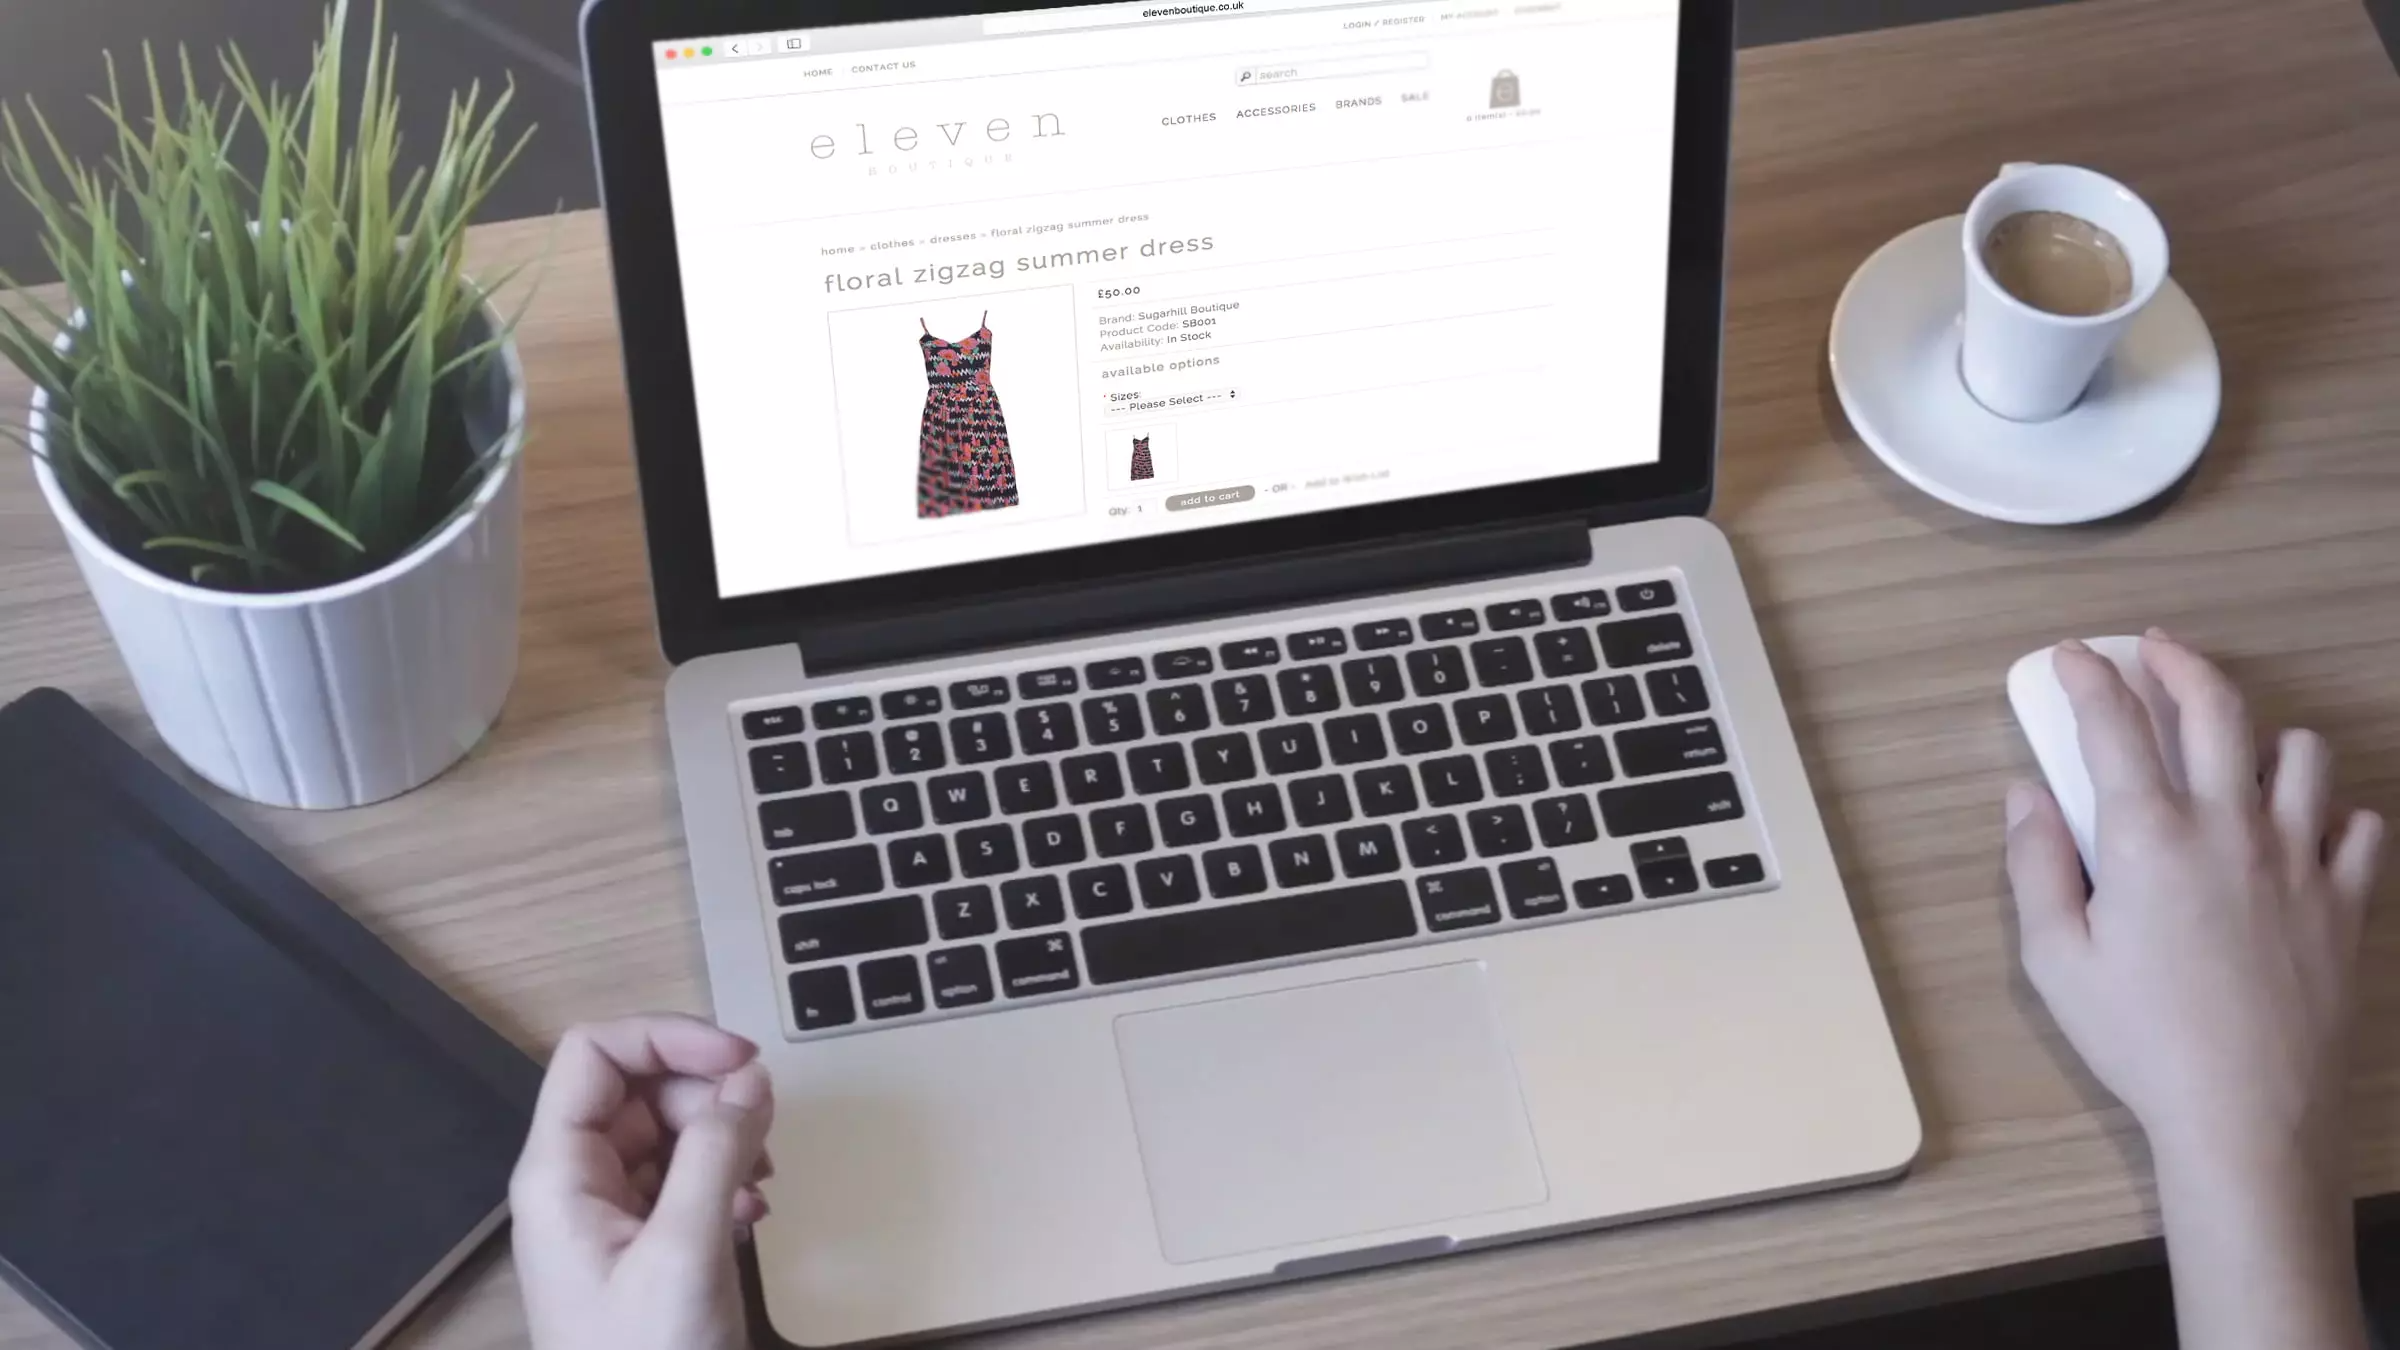 Eleven Boutique website being browsed by person on a laptop